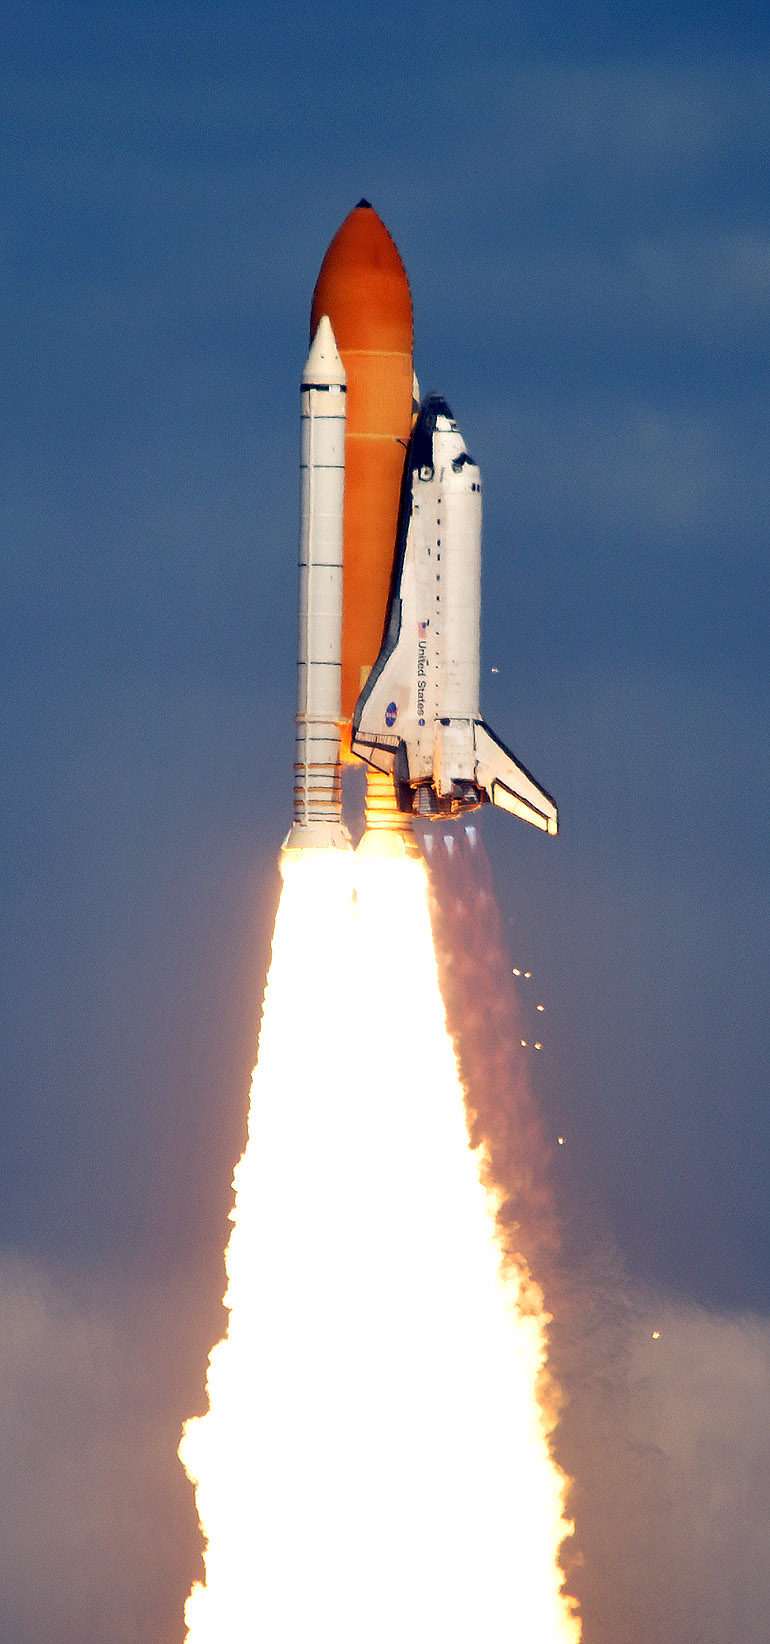 liftoff_close_0030